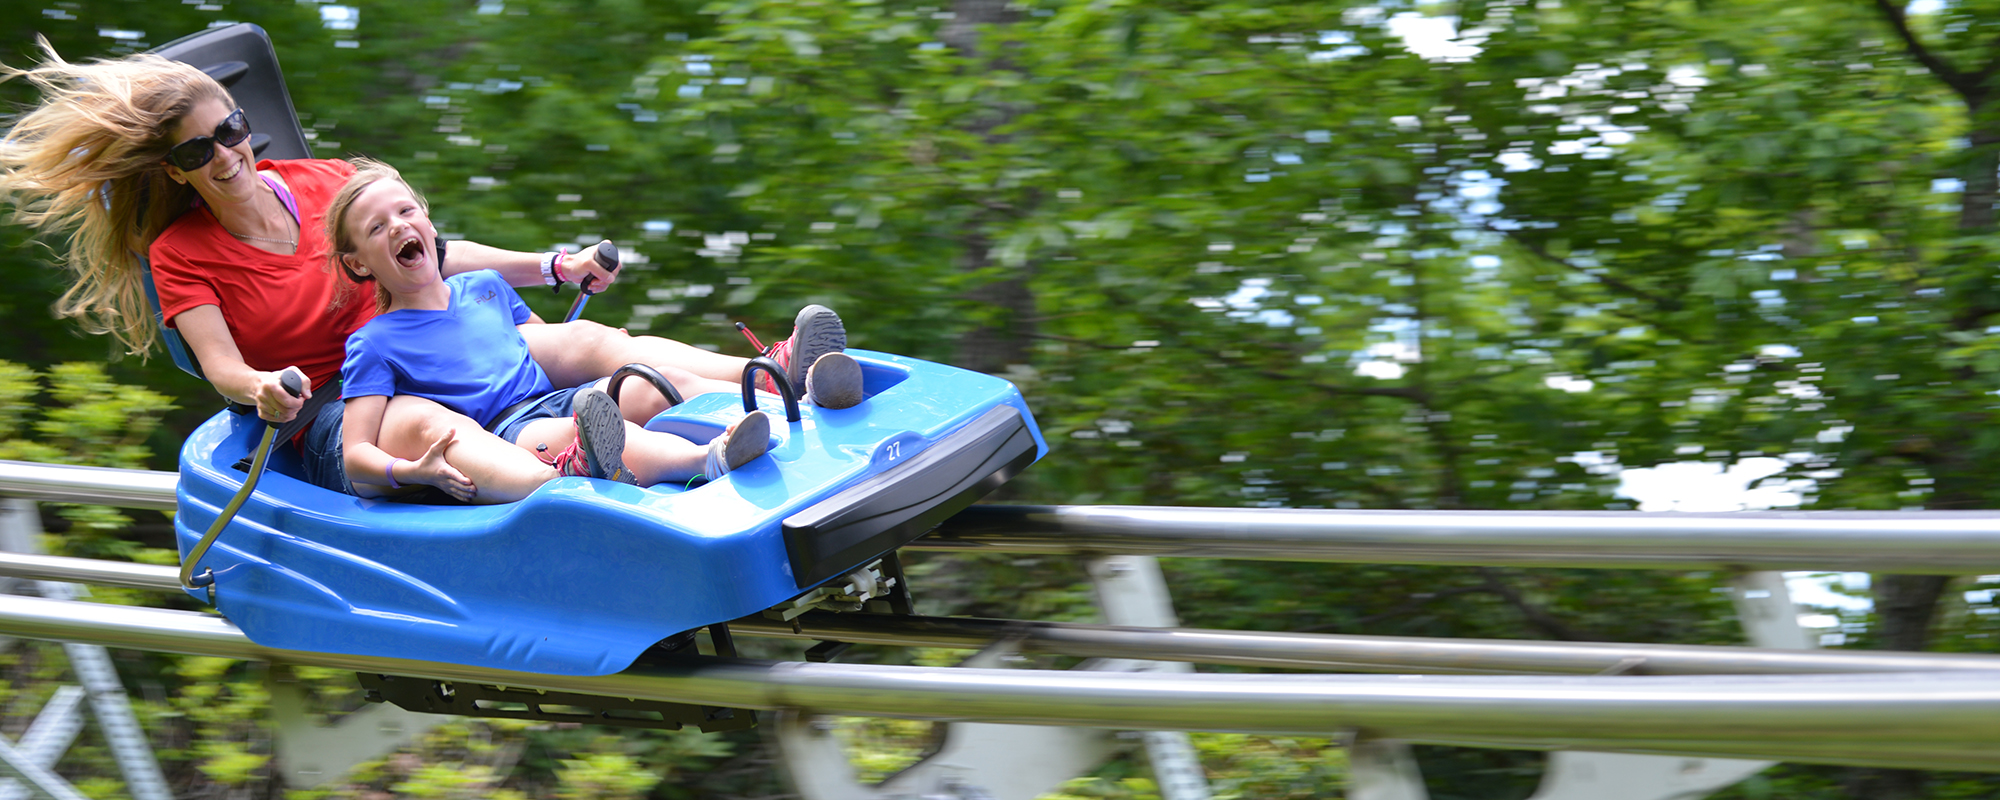 Woman and child riding down the mountain coaster